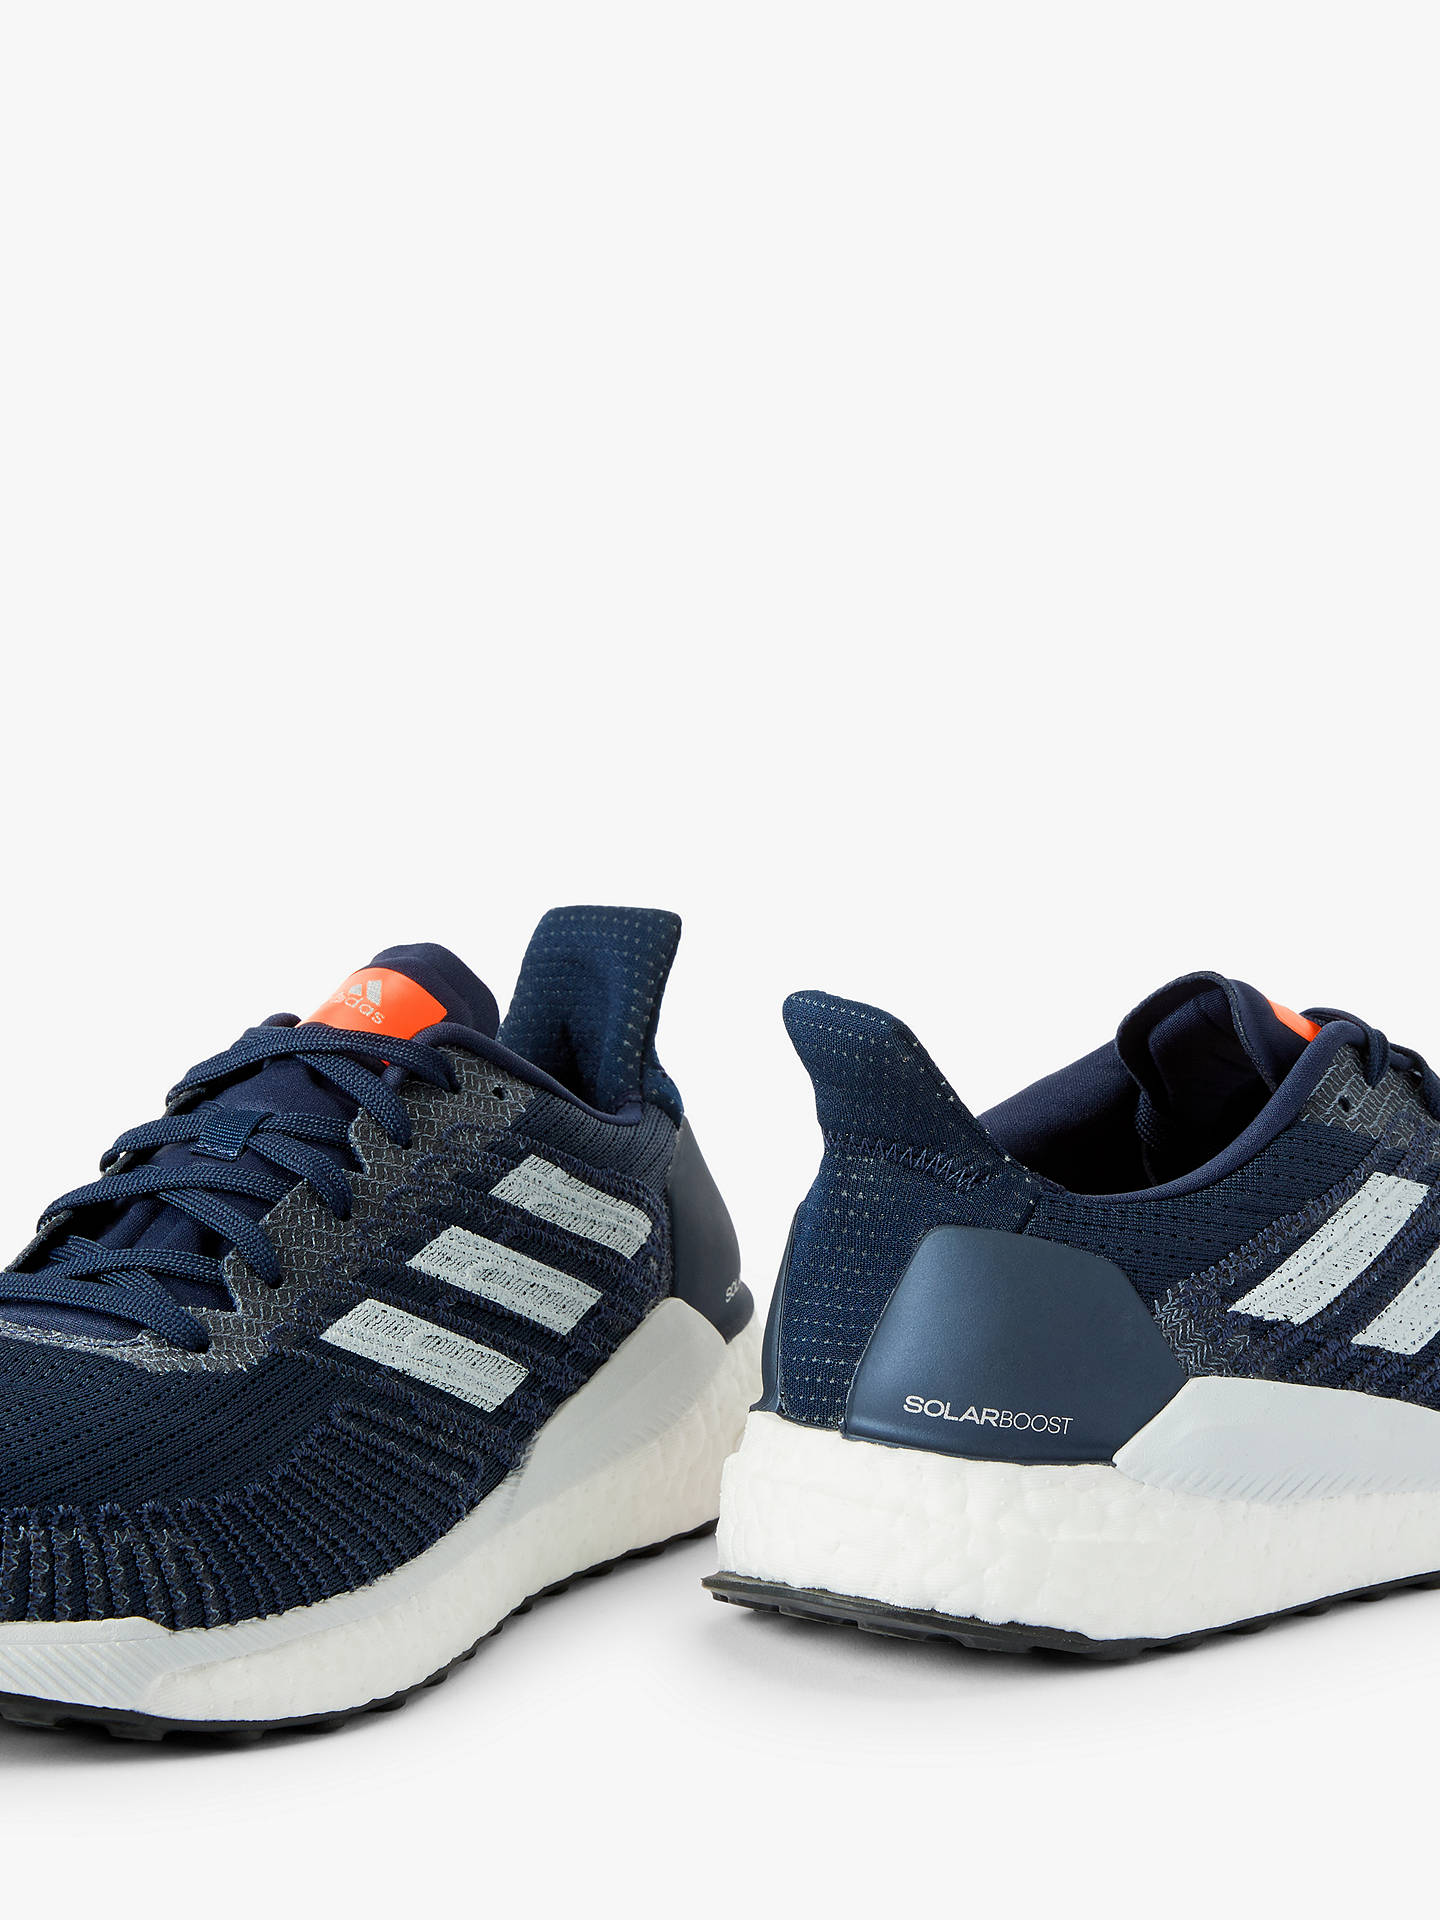 check out 07250 6ad7a adidas Solar Boost 19 Men's Running Shoes, Collegiate Navy/Blue Tint/Solar  Orange